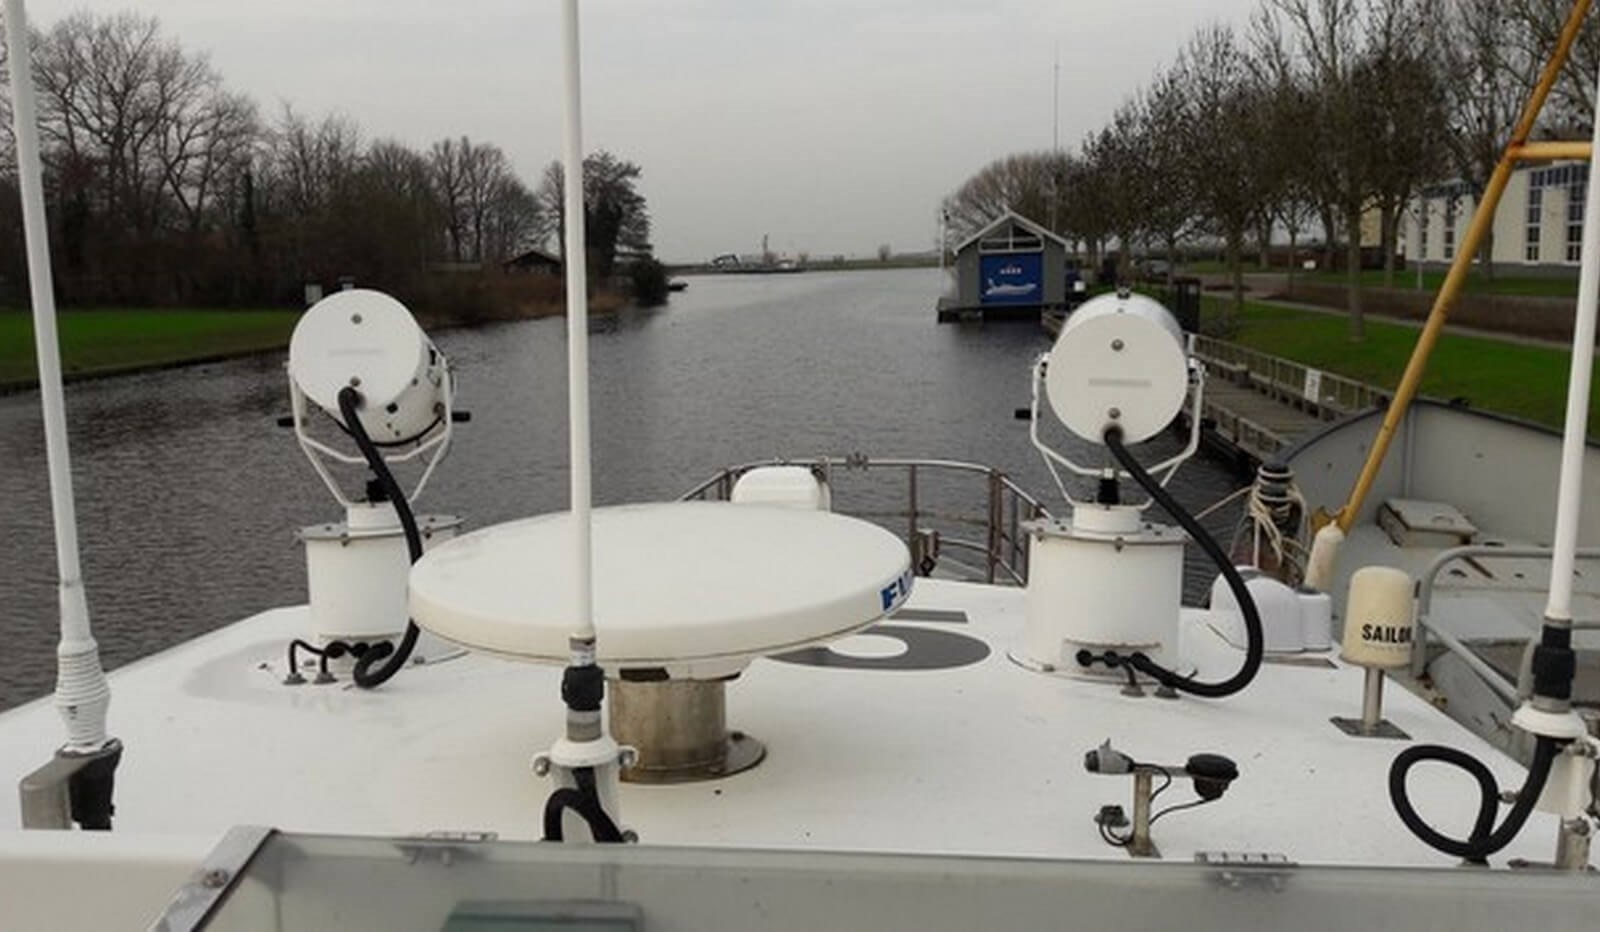 used police boat for sale 07591 (13)